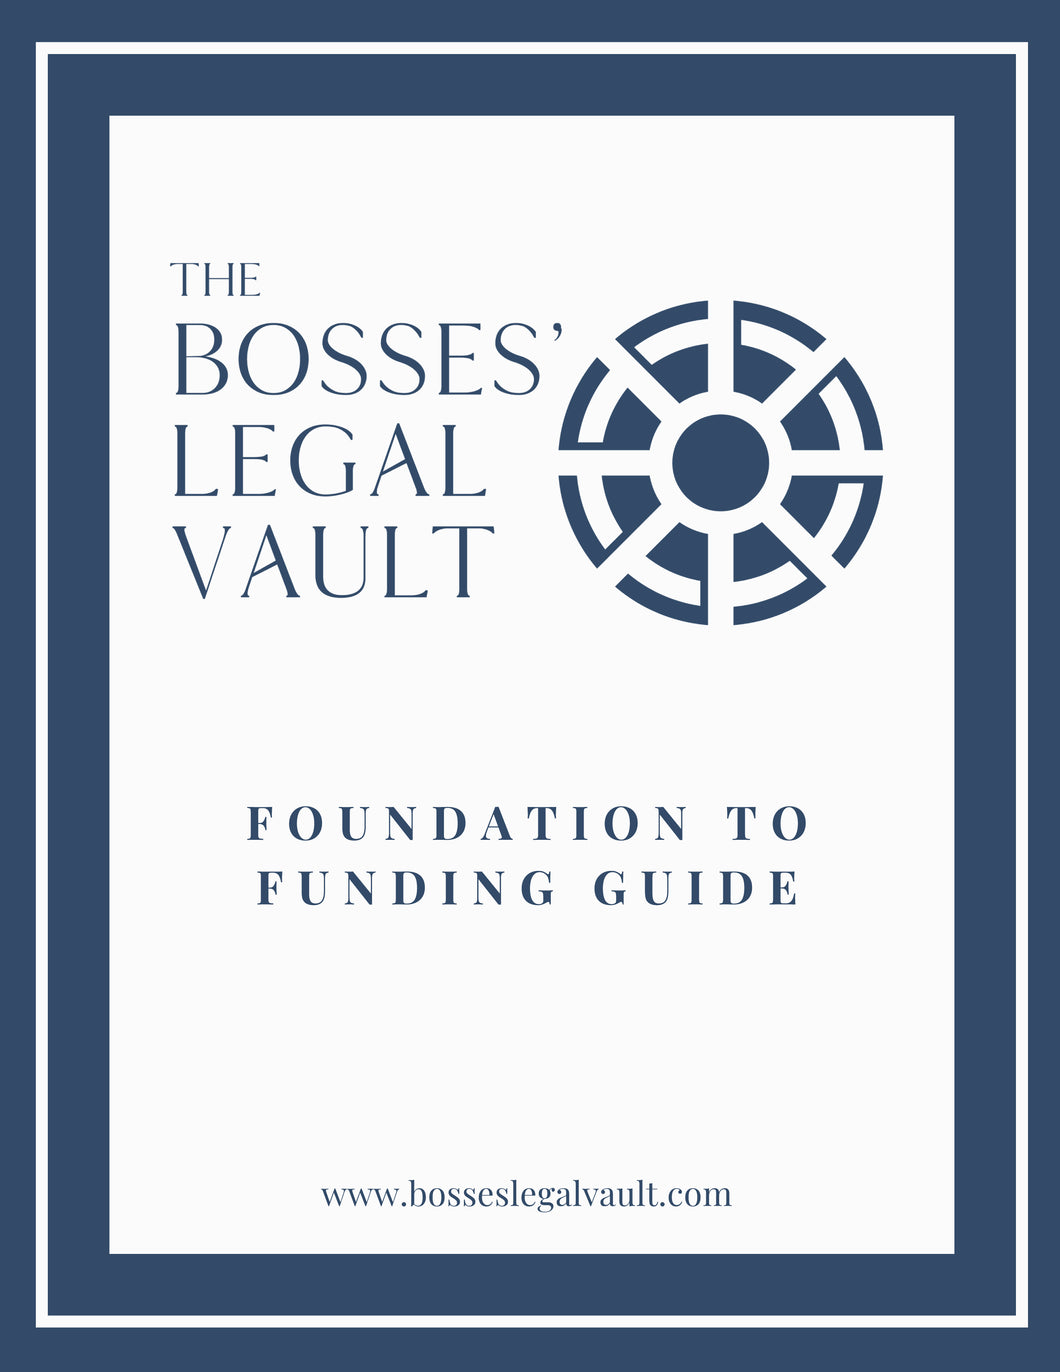 Foundation to Funding Guide